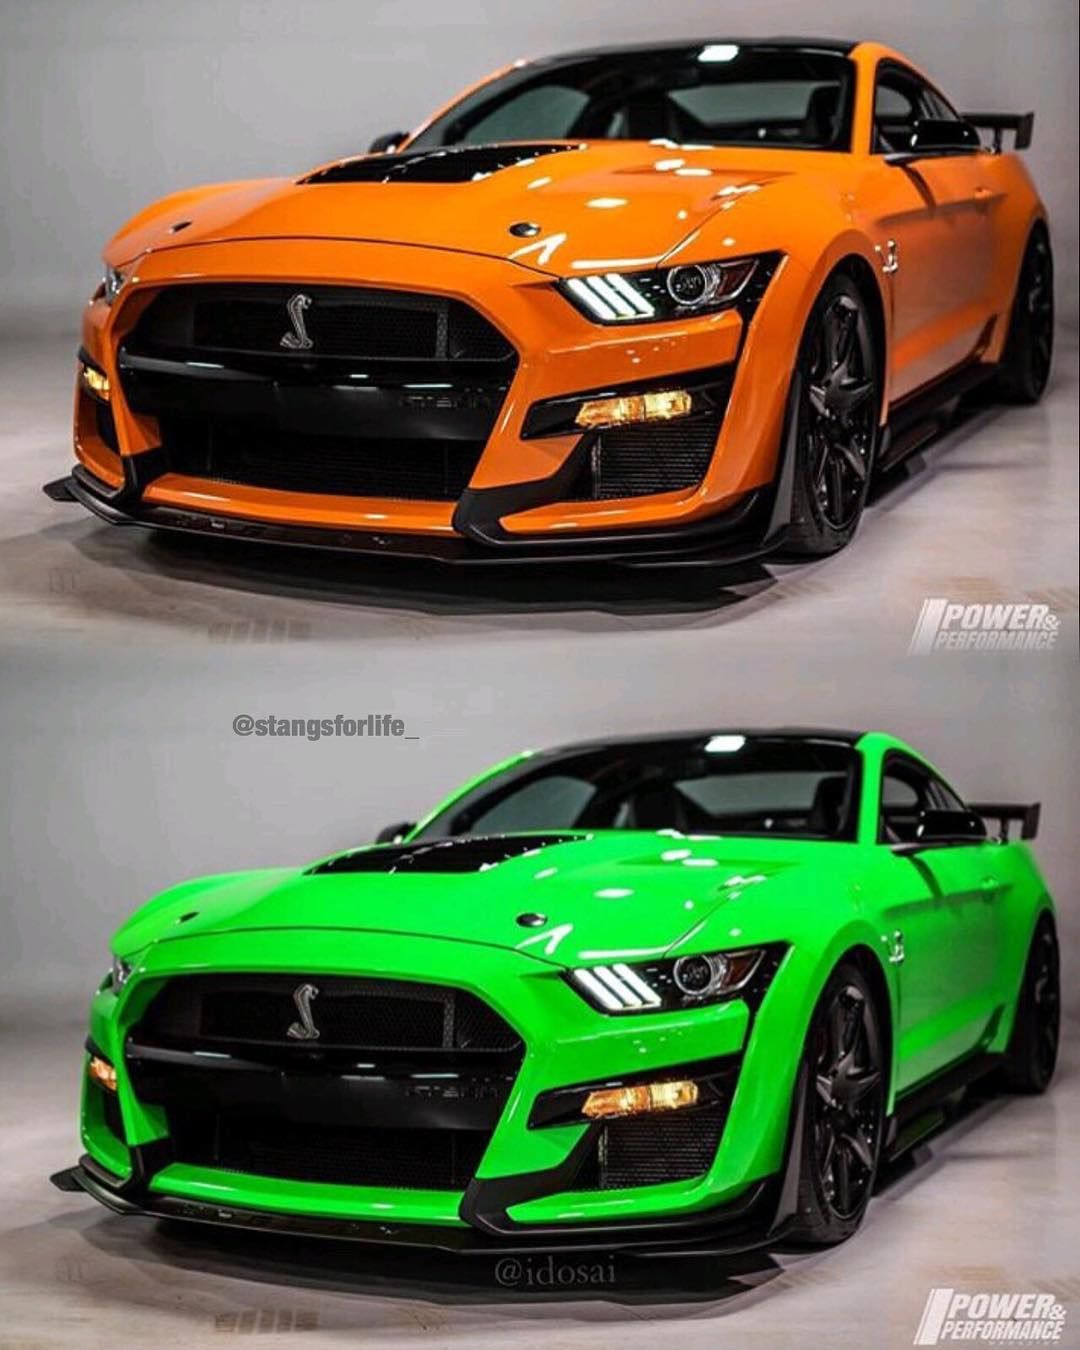 Did You Know The 2020 Gt500 Comes With The Biggest Shelby Logo Ever Offered Top Or Bottom Ford Mustang Shelby Gt500 Mustang Cars Sport Cars